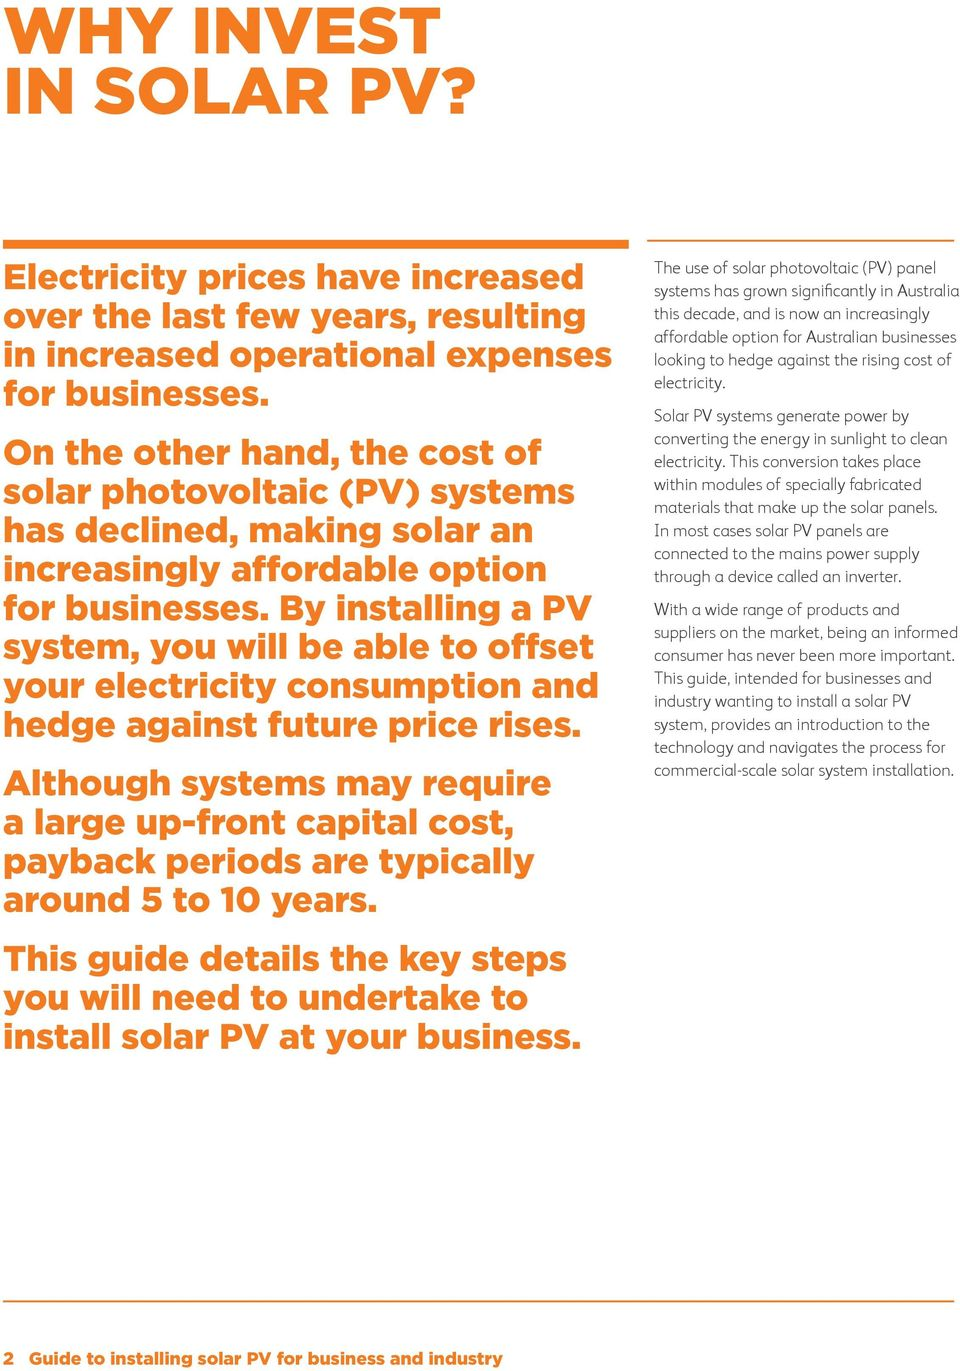 By installing a PV system, you will be able to offset your electricity consumption and hedge against future price rises.